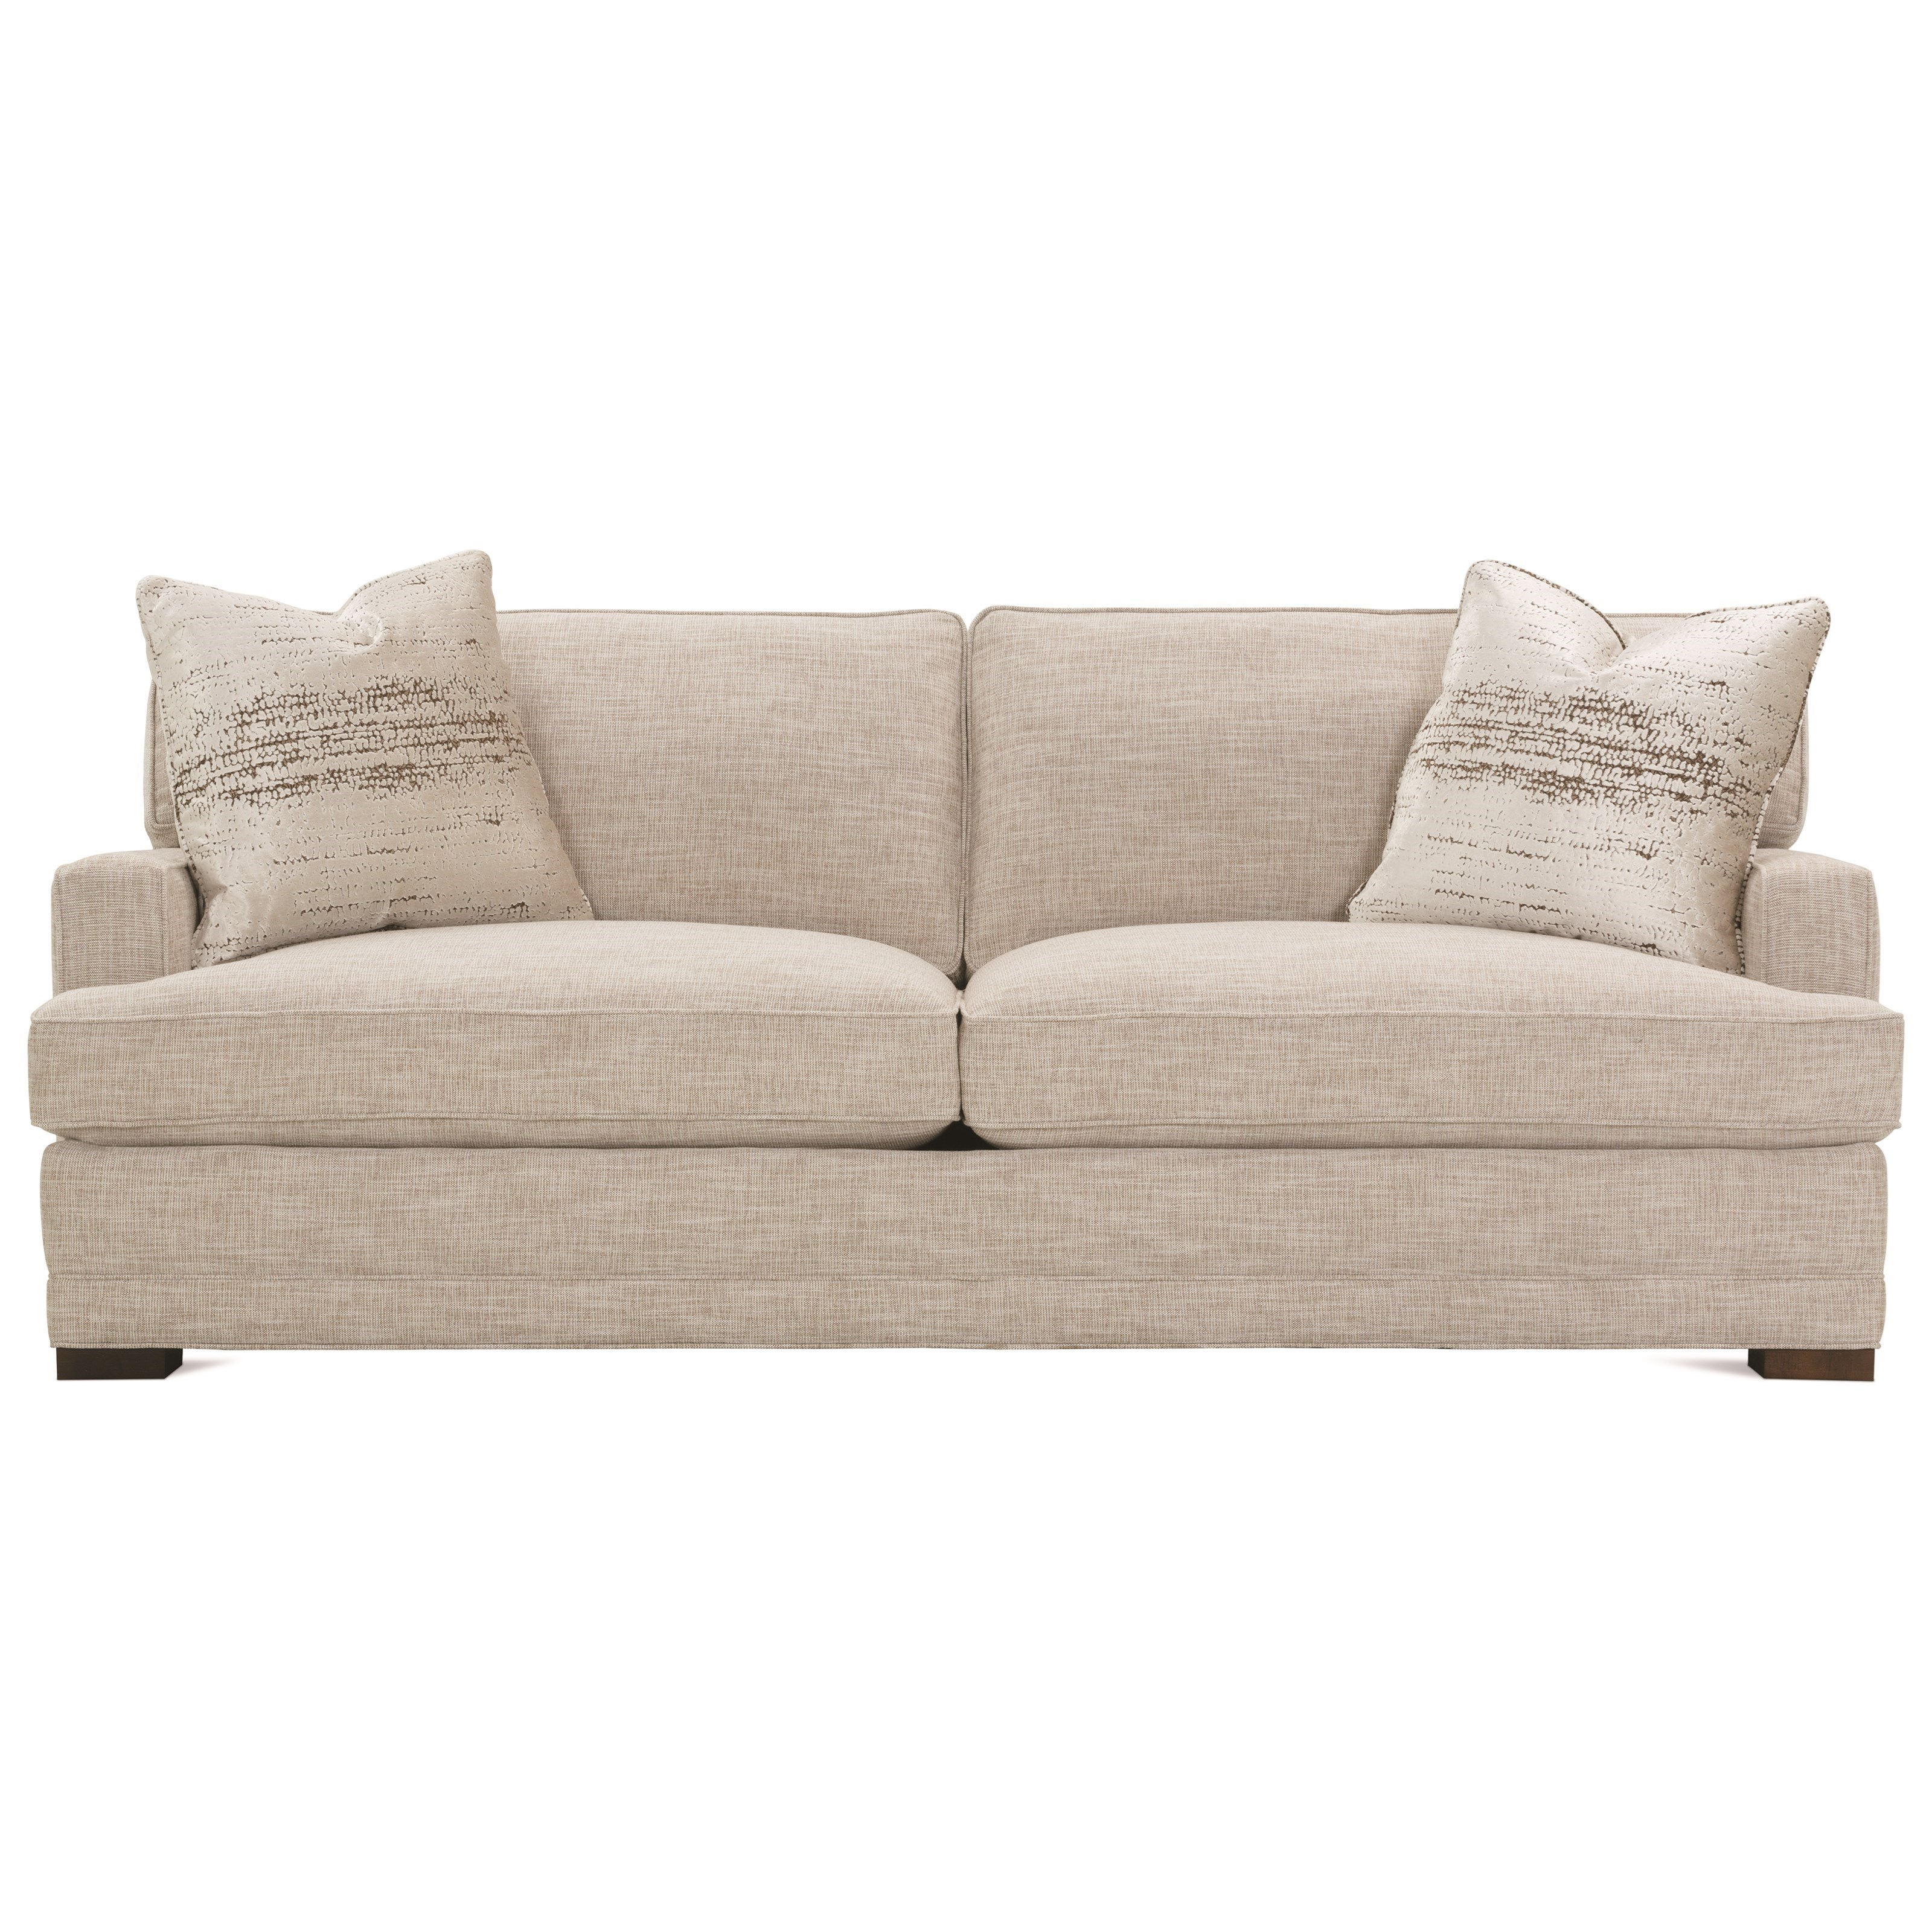 Grayson Sofa by Rowe at Baer's Furniture